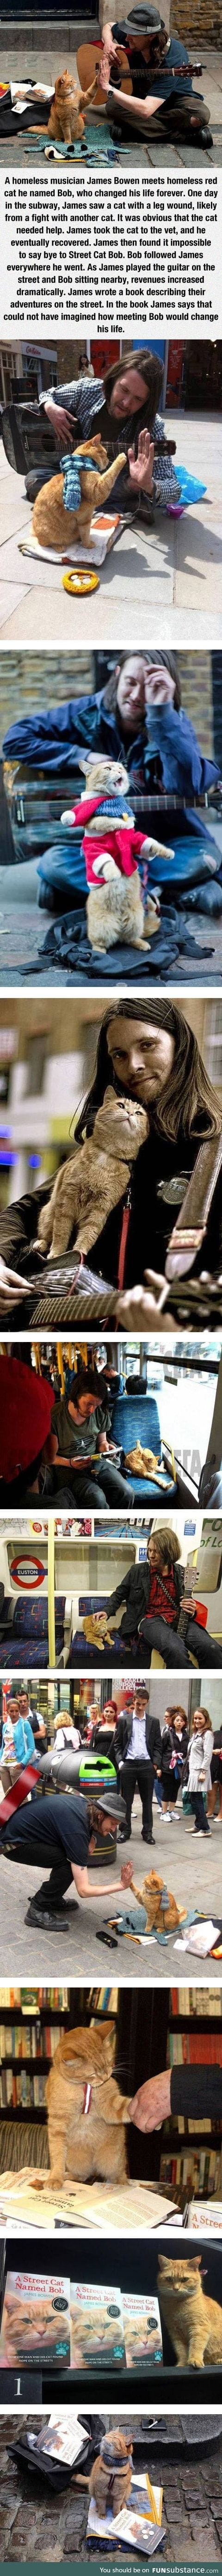 The homeless musician and his cat